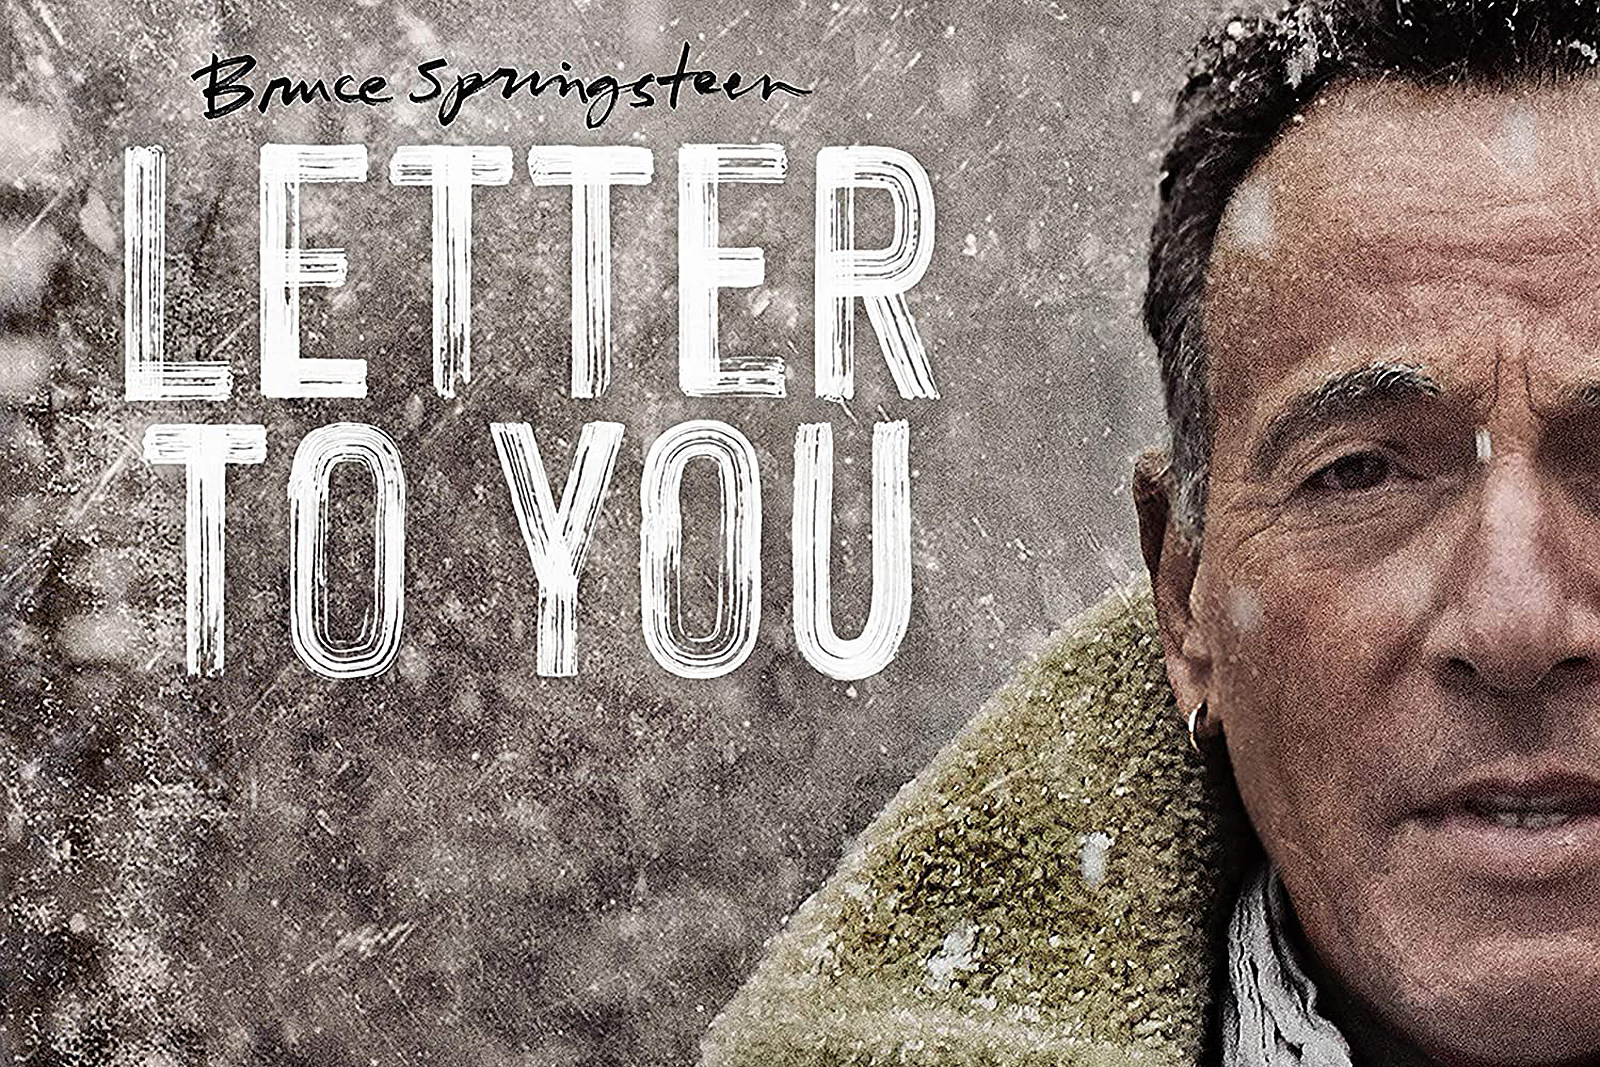 Bruce Springsteen lança novo álbum; ouça Letter To You